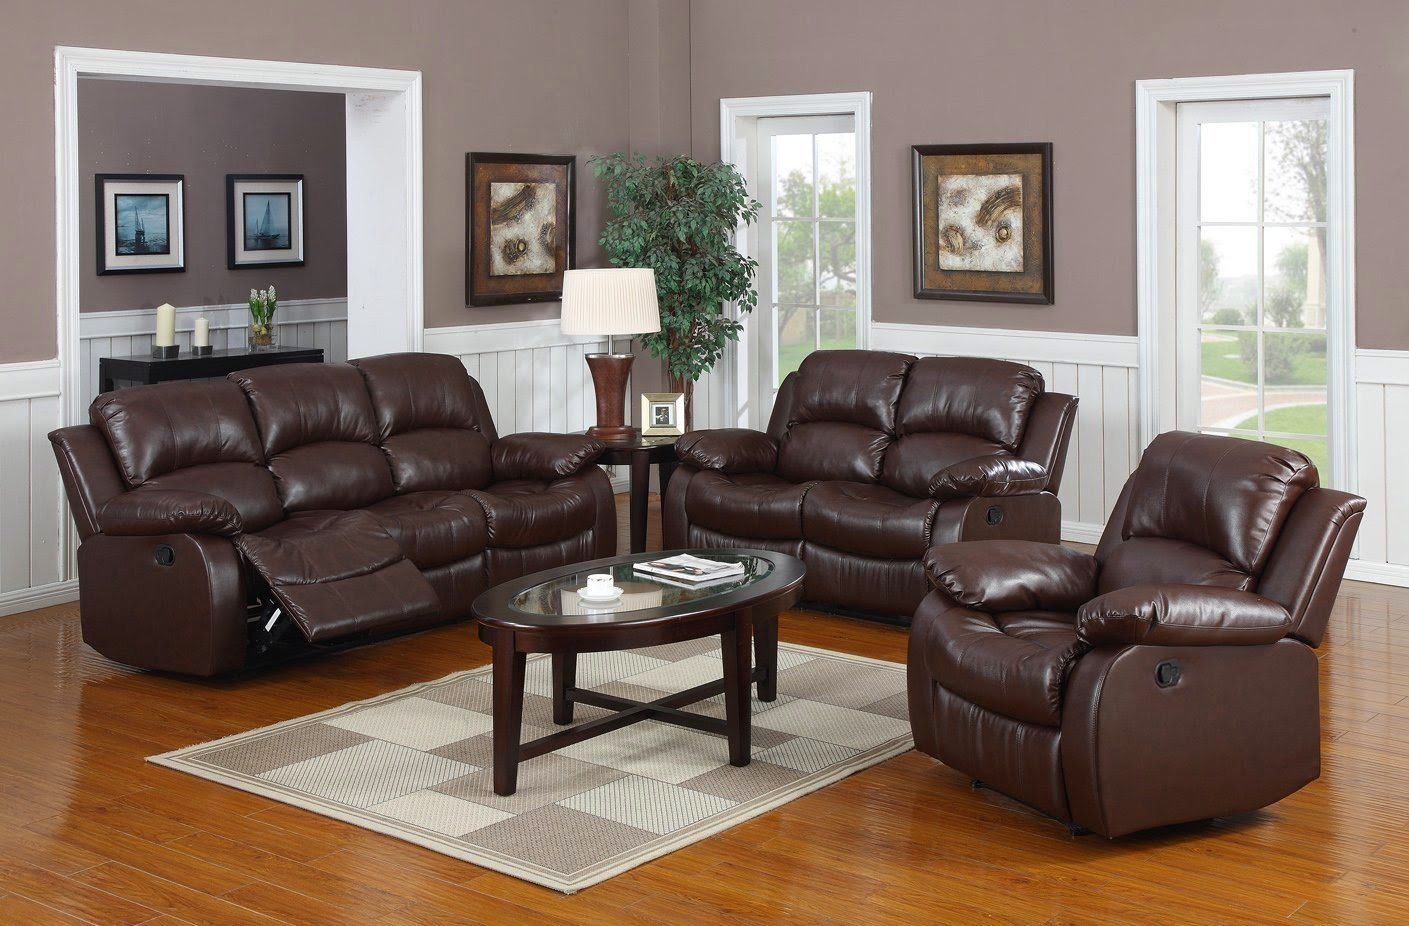 3 Pc Whitaker Brown Reclining Sofa Set